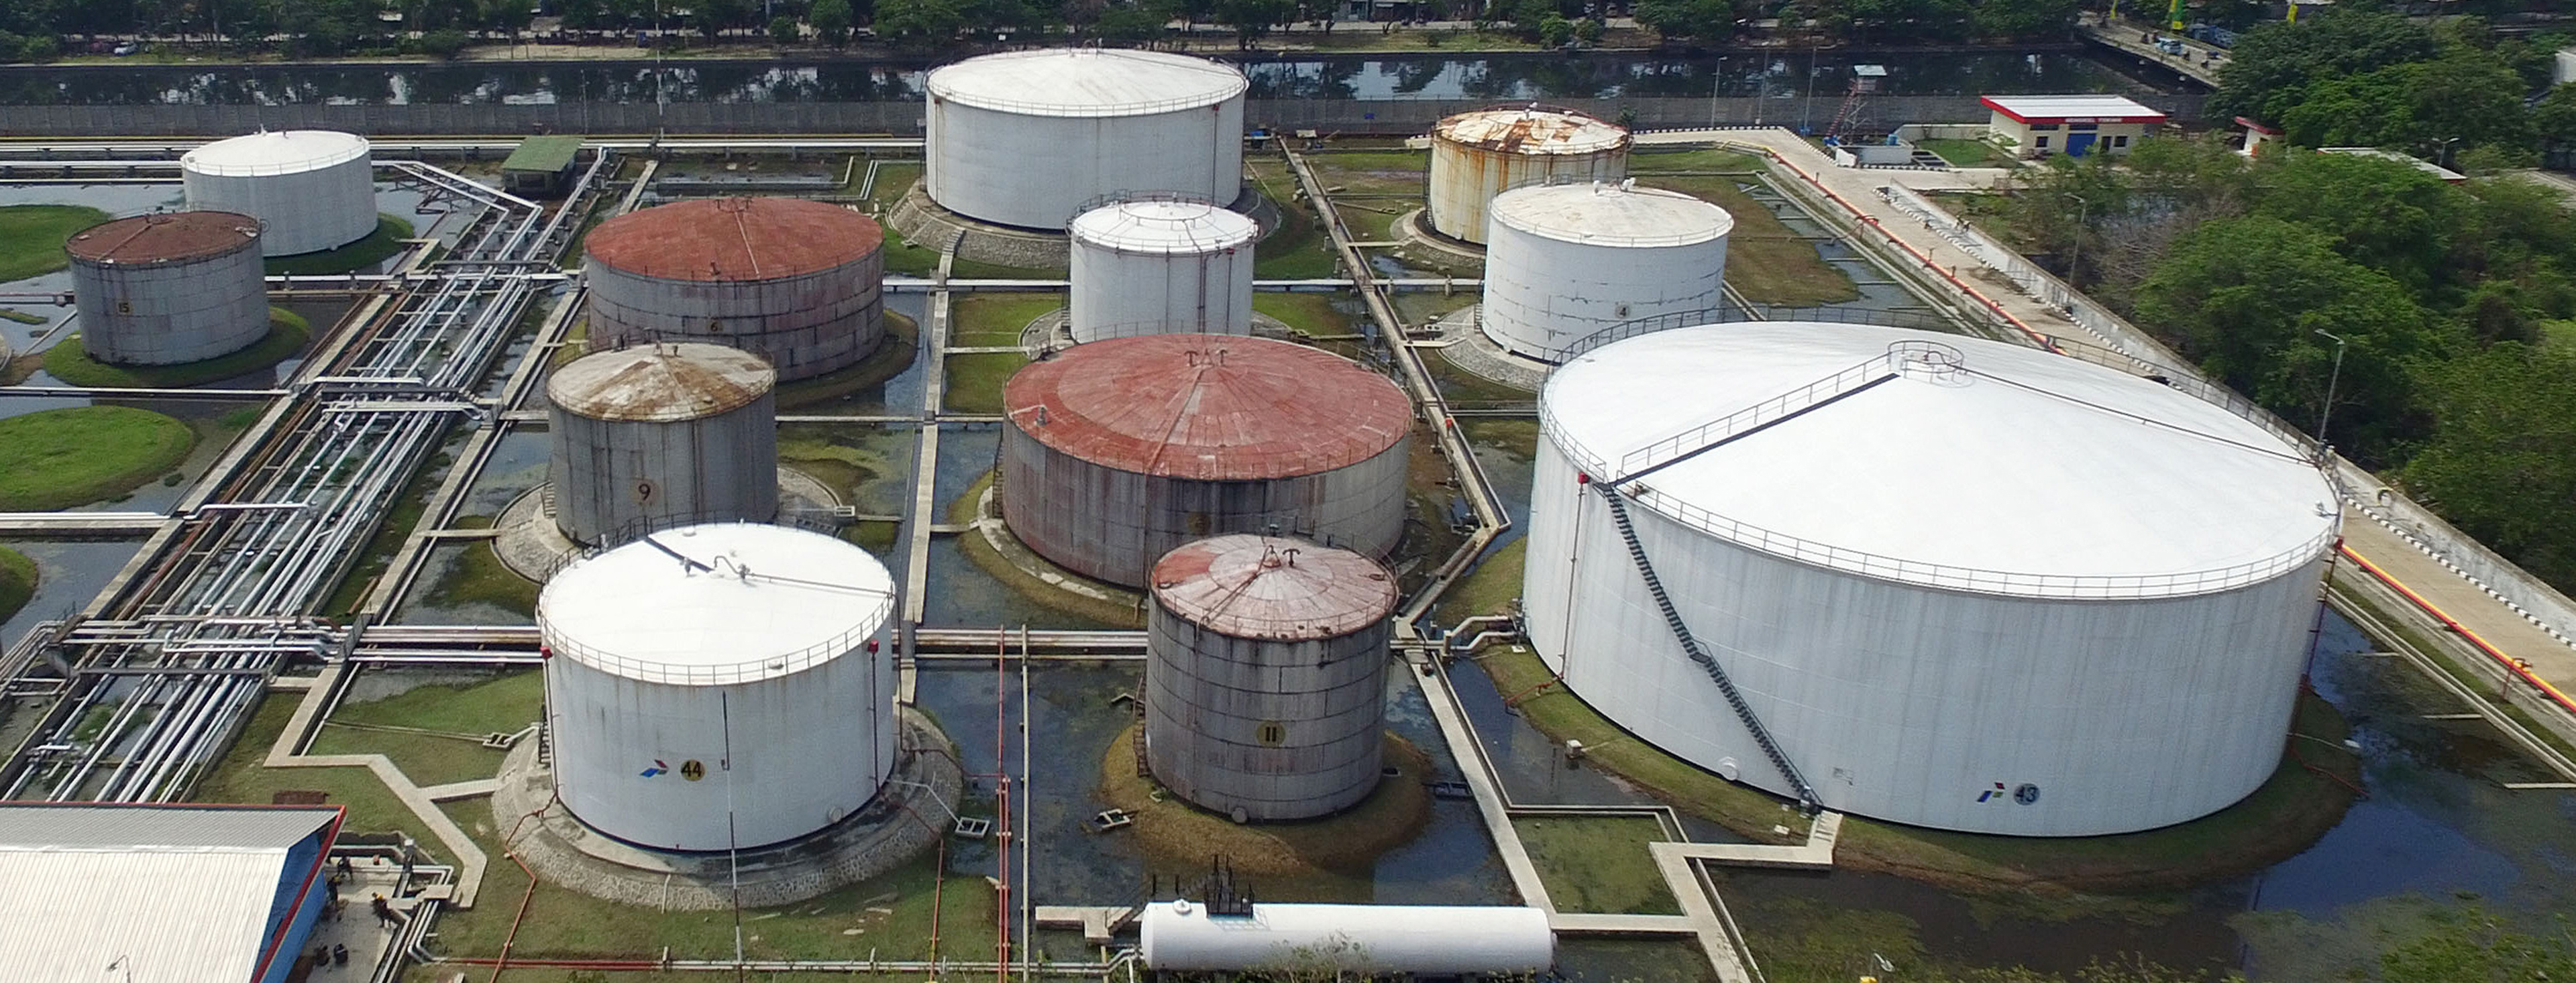 Aerial Views Of PT Pertamina Oil Tankers And Storage Facilities As Indonesia Rejoins OPEC